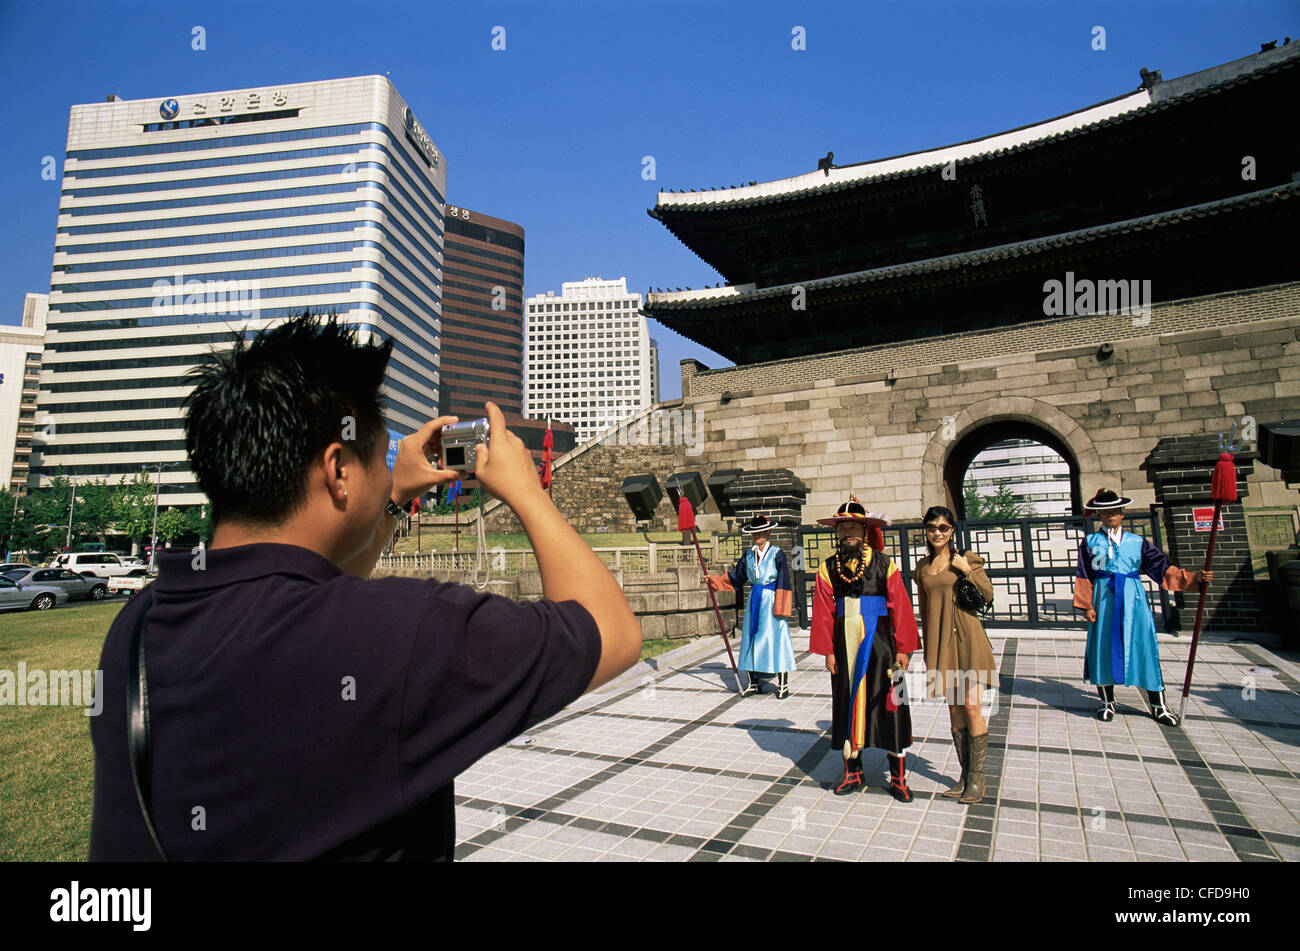 Korea, Seoul, Sungnyemun, South Gate, Asian Tourist Couple Taking Photos of  Ceremonial Guards in Front of Sungnyemun Gate